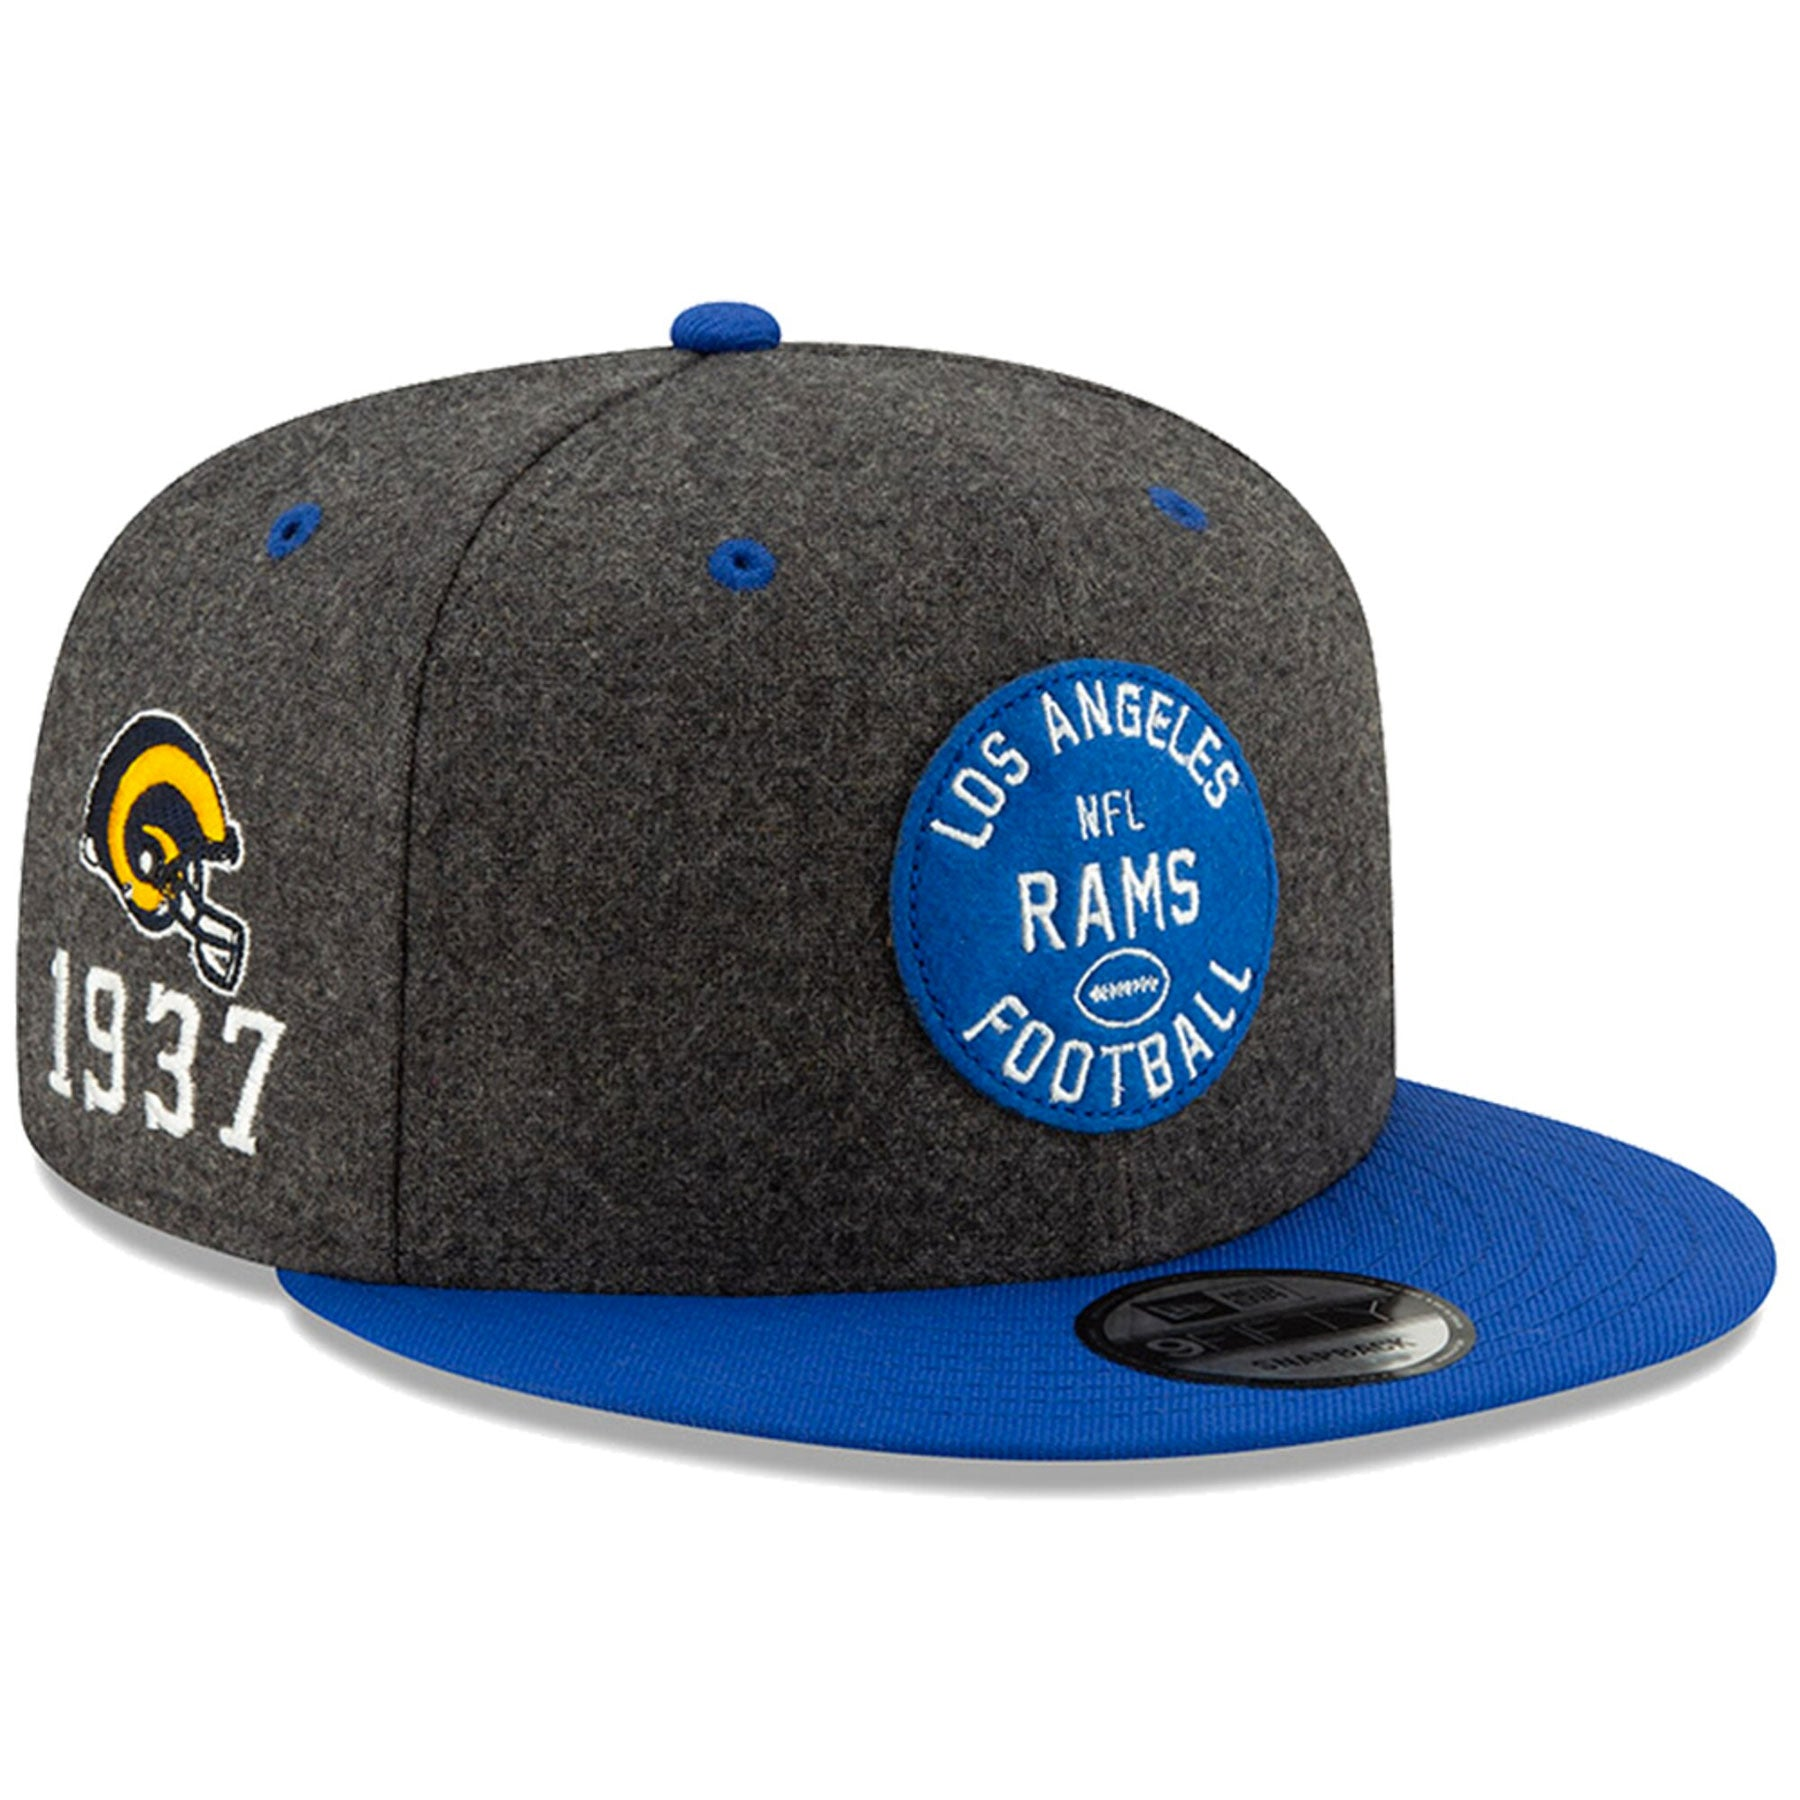 95718813a Los Angeles Rams New Era 2019 NFL On Field Sideline Home Official Skull  Logo 9FIFTY 1930s Charcoal/Royal Snapback Hat